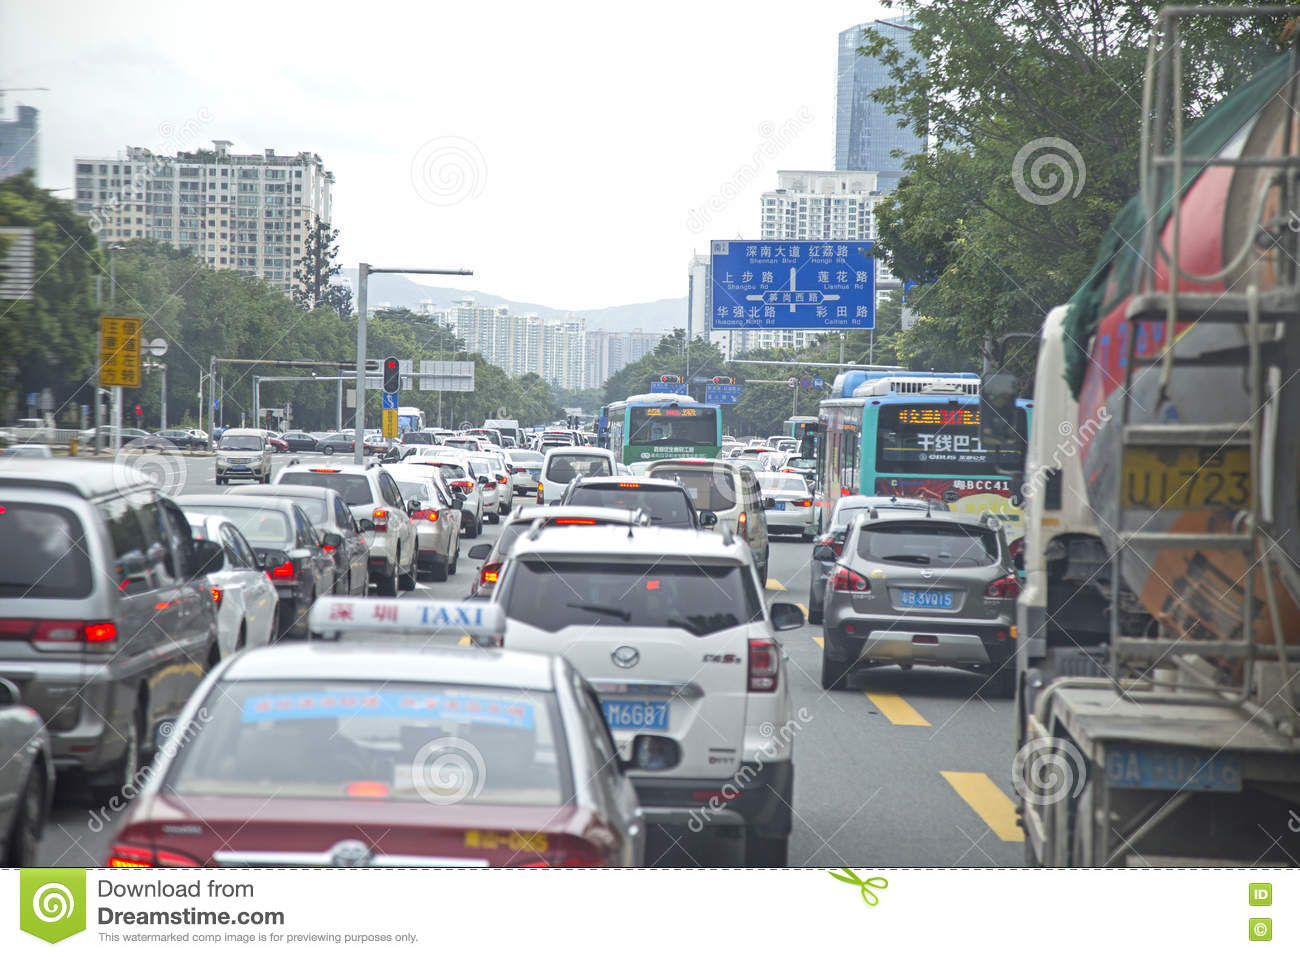 Traffic jam at rush hour on a busy street of Shenzhen, China